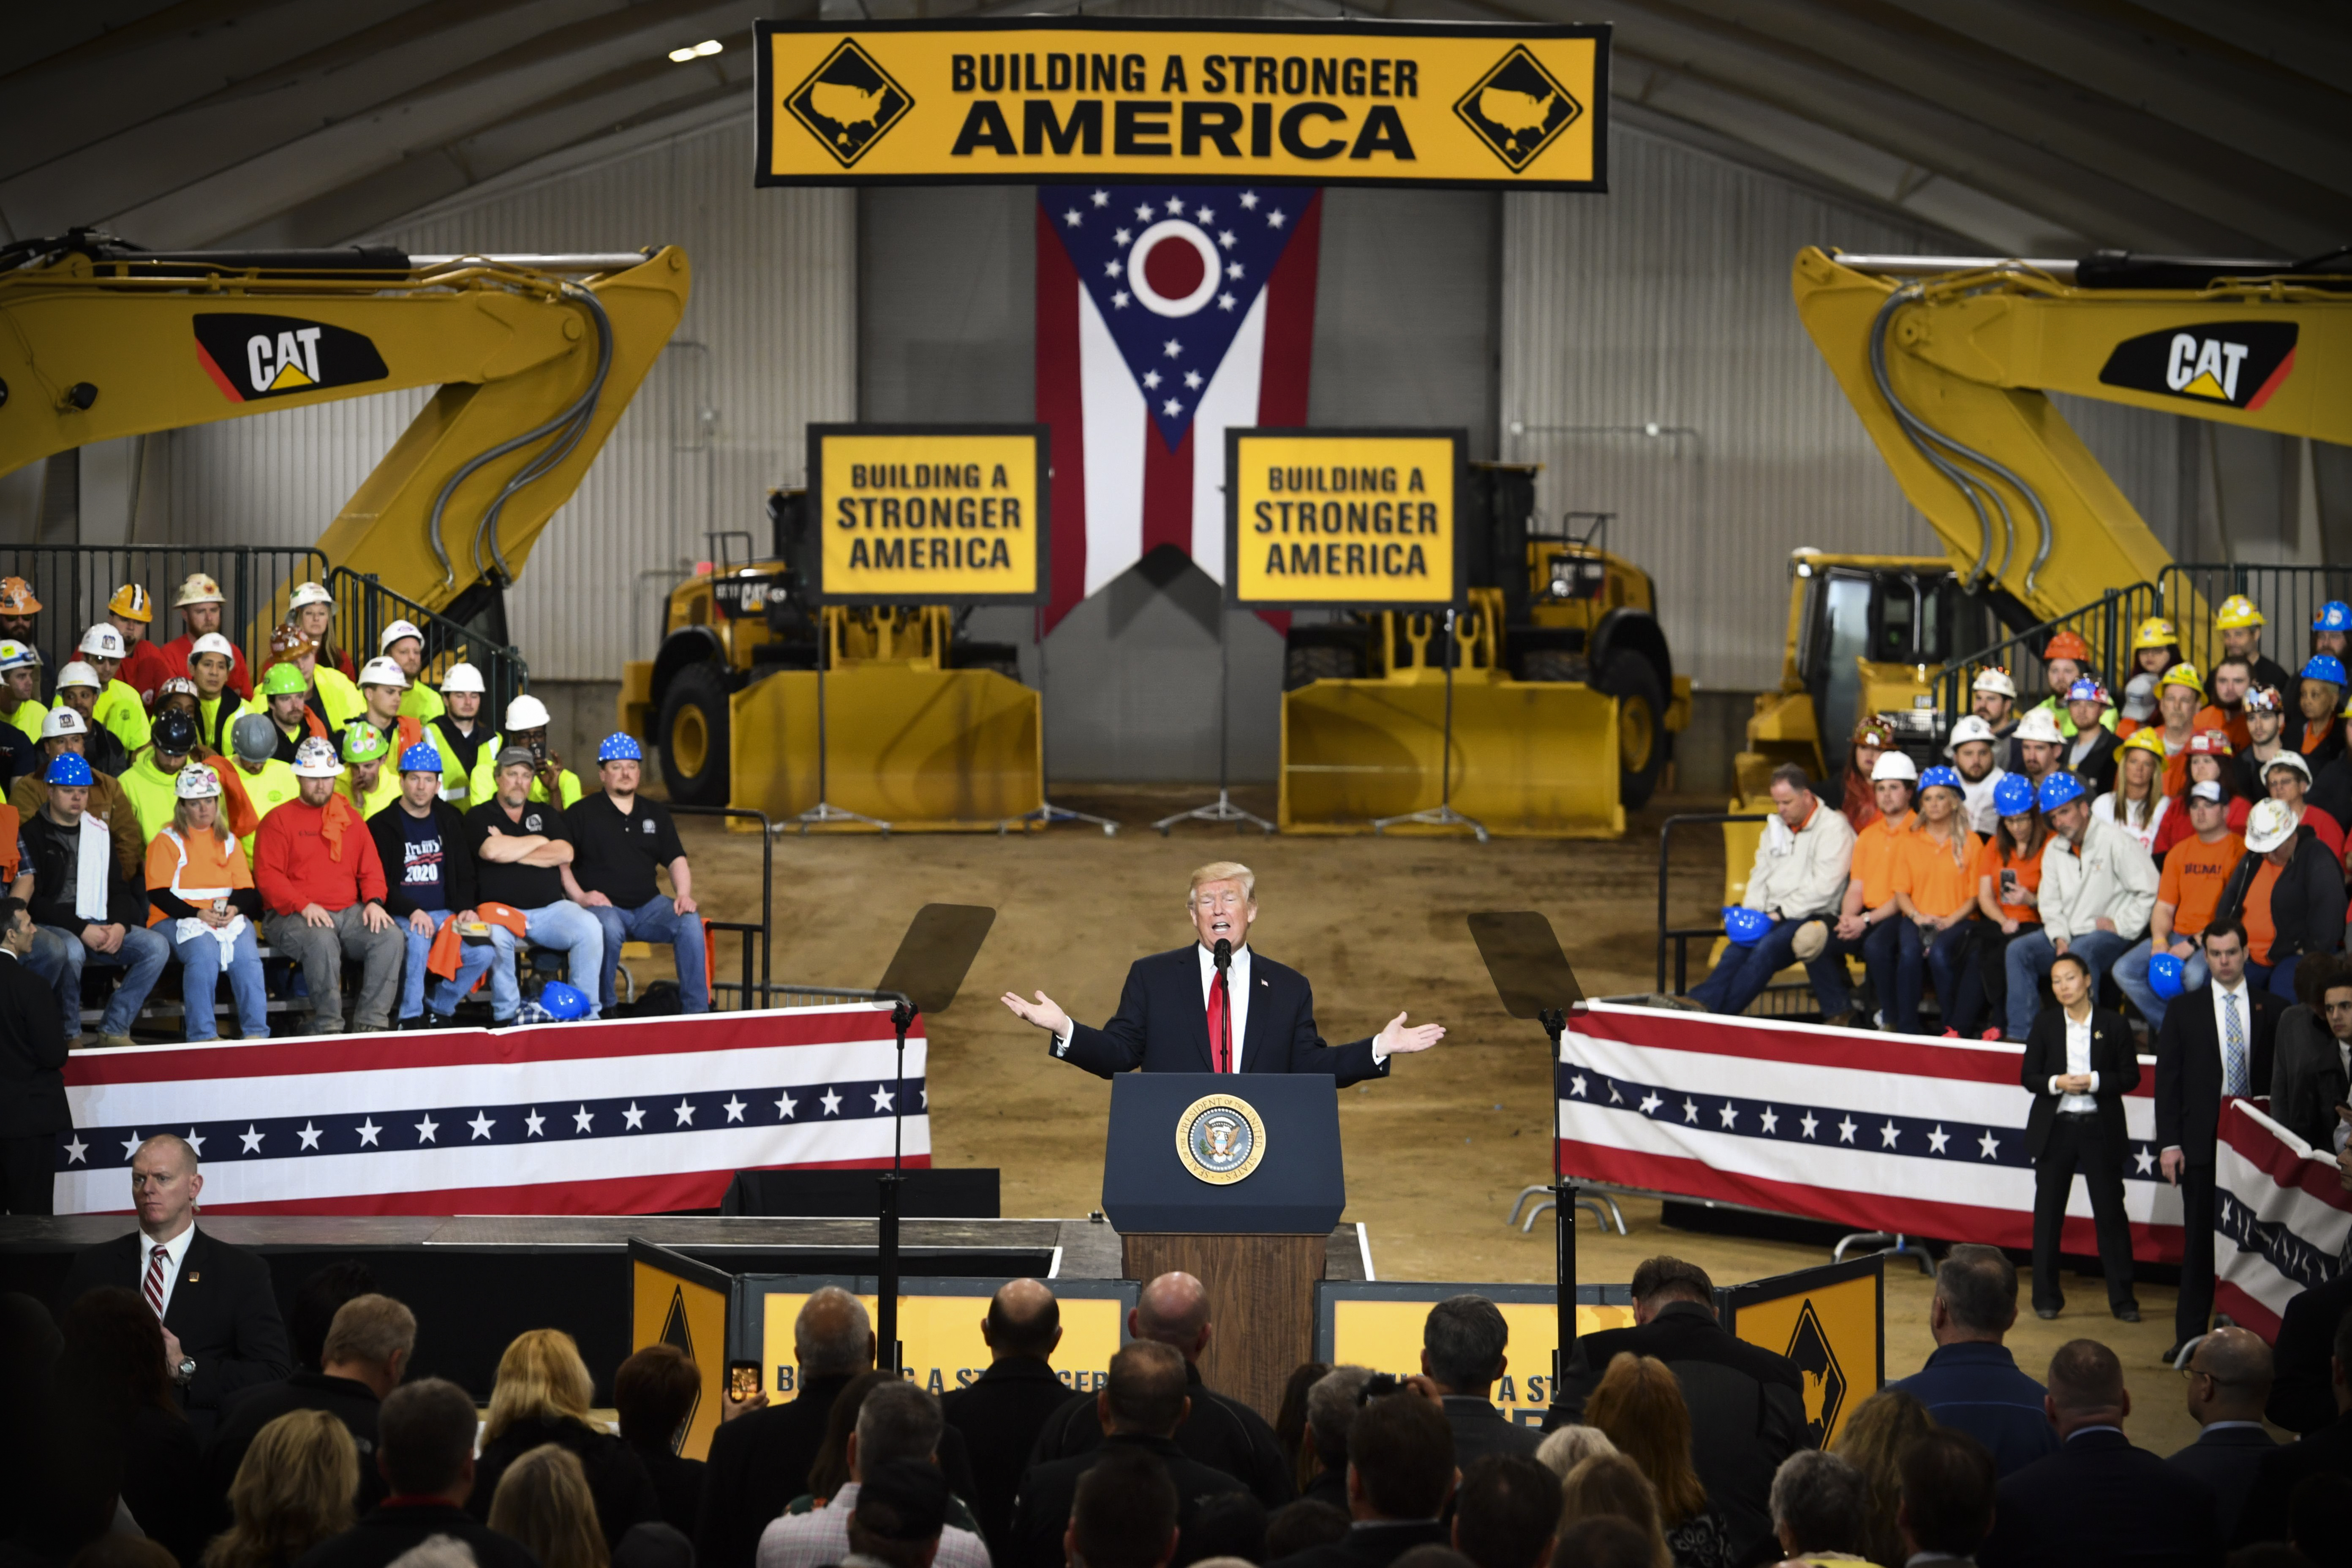 President Trump held a rally discussing infrastructure development at the Richfield Training Site, south of Cleveland, Ohio on March 29, 2018.